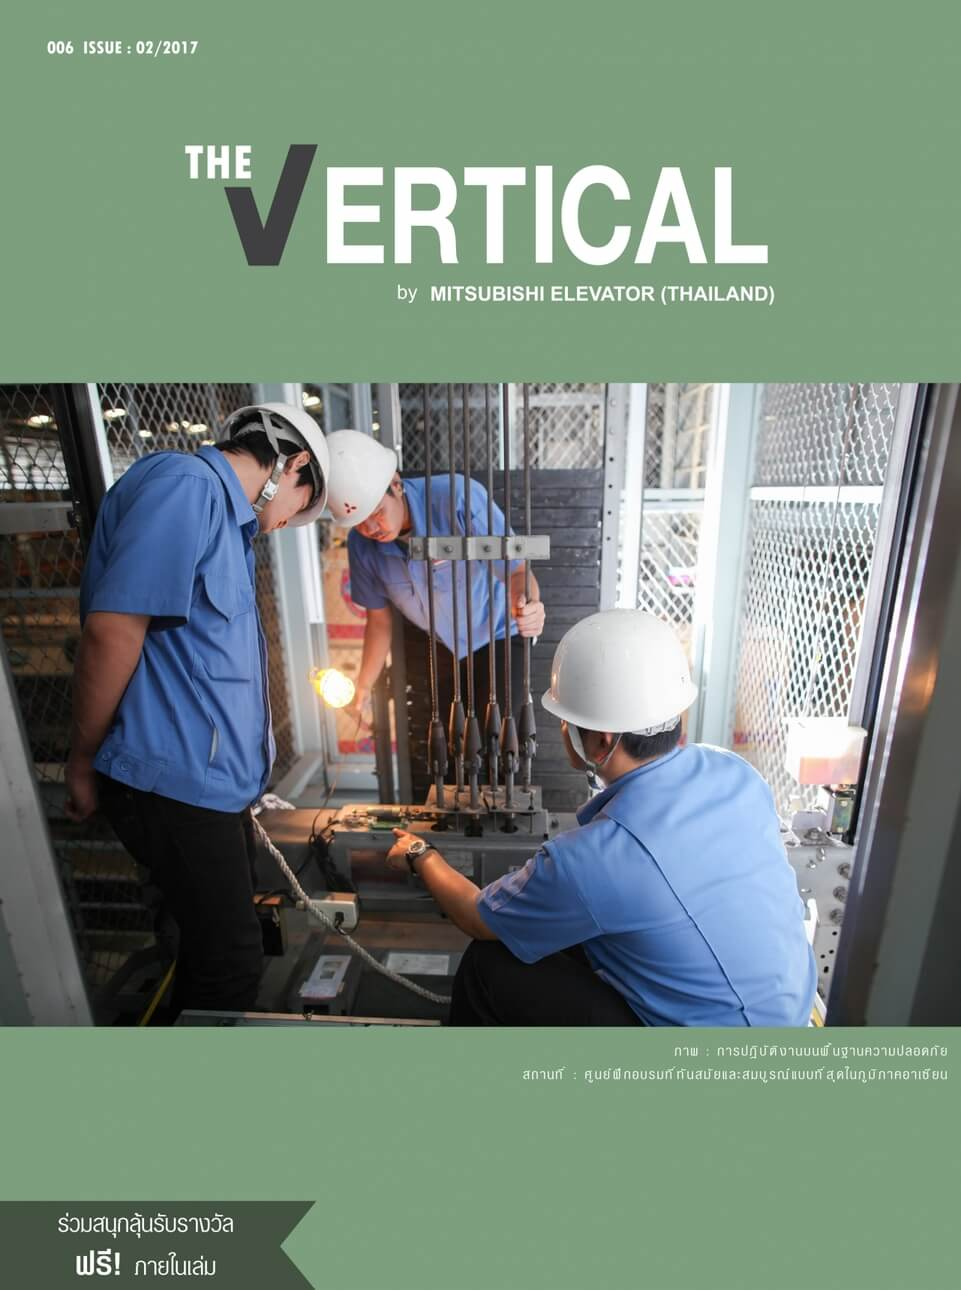 The Vertical 02-2017